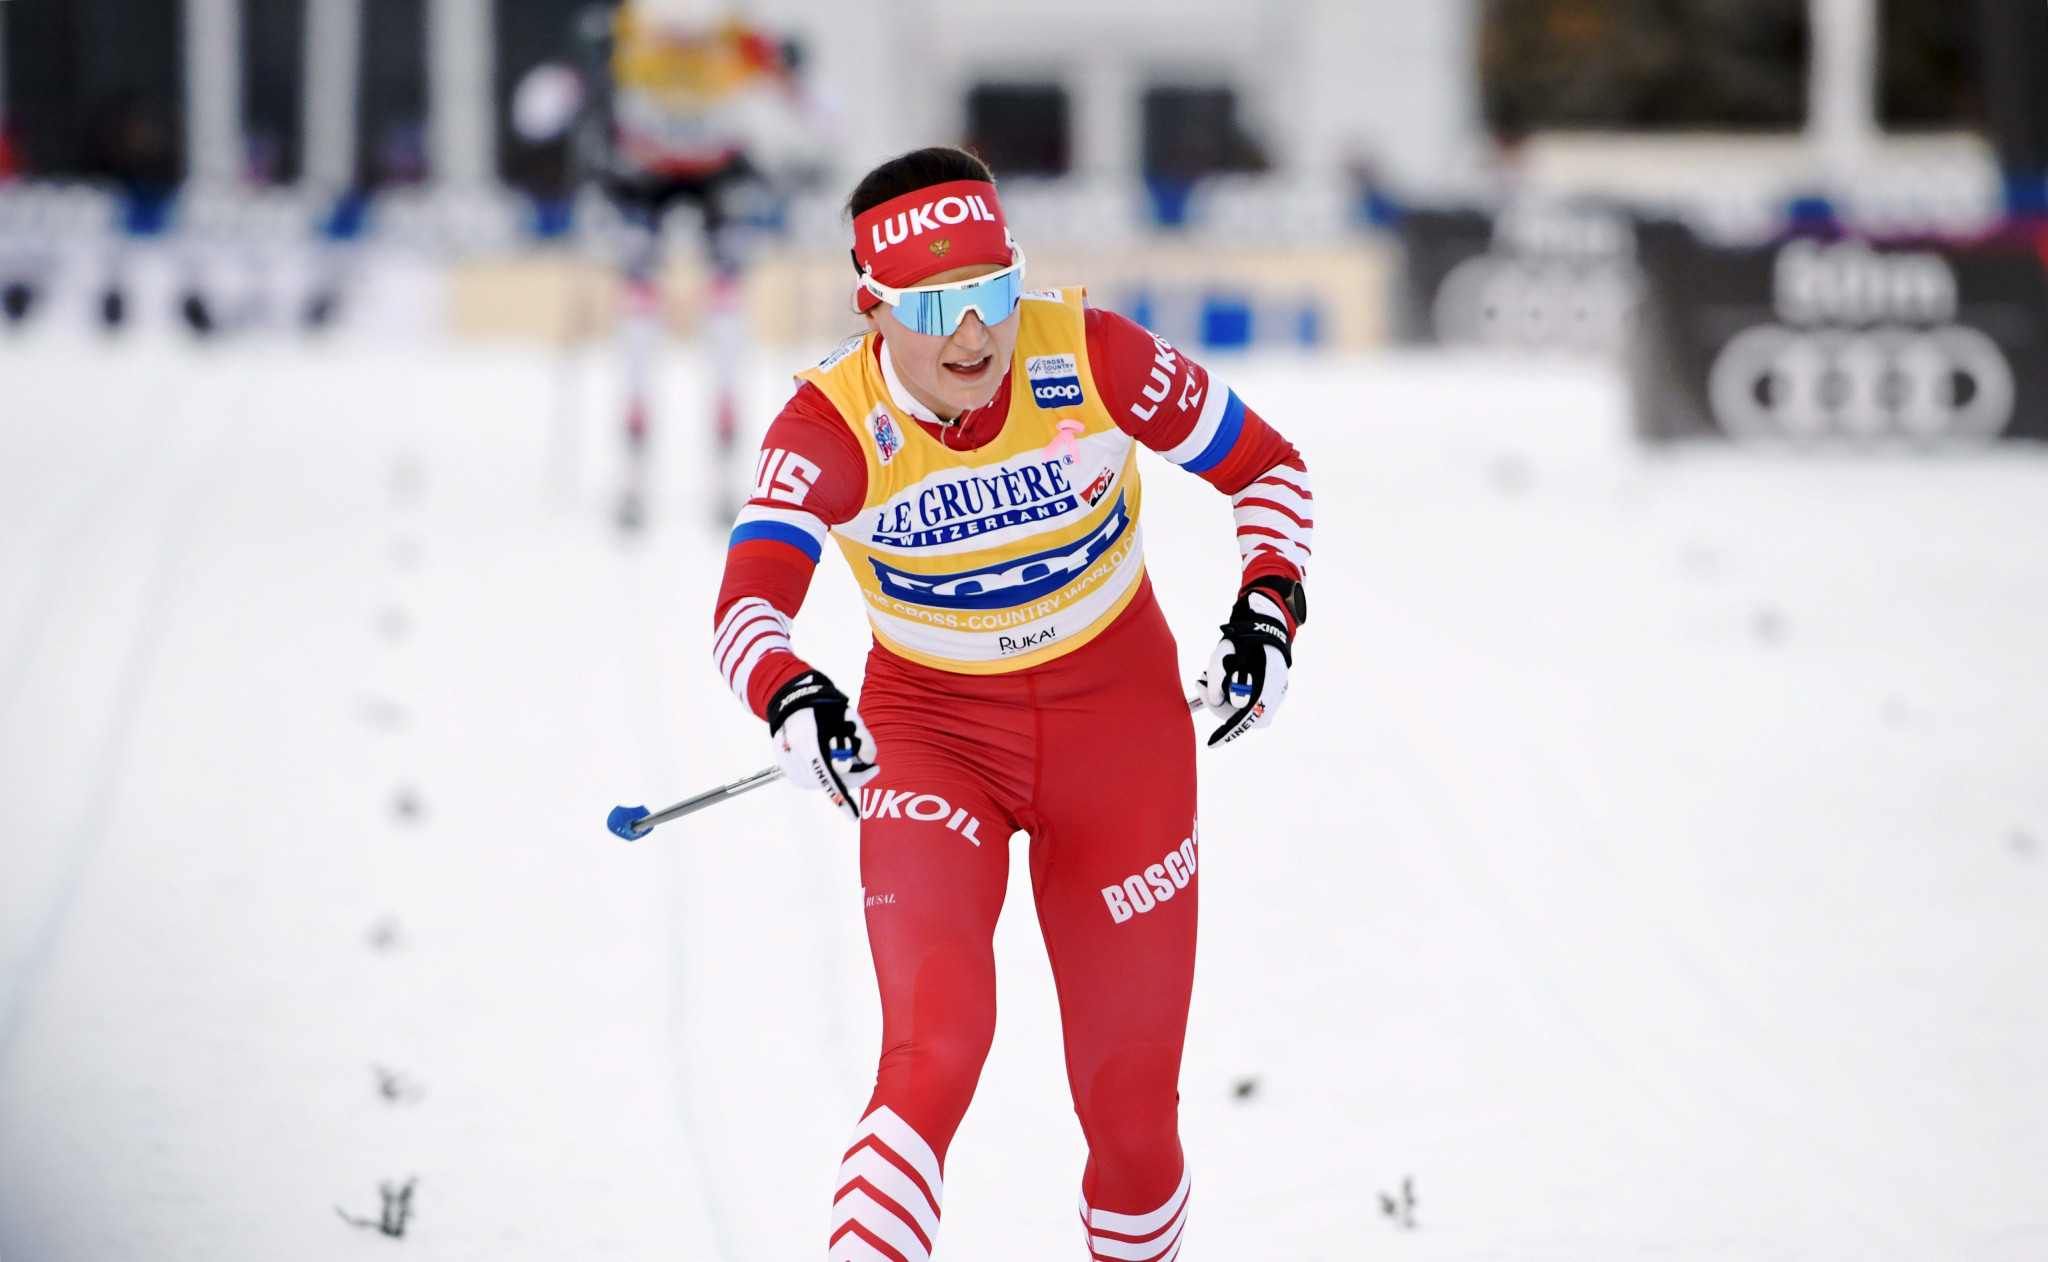 Yulia Belorukova could be among the contenders in the women's sprint event tomorrow ©Getty Images